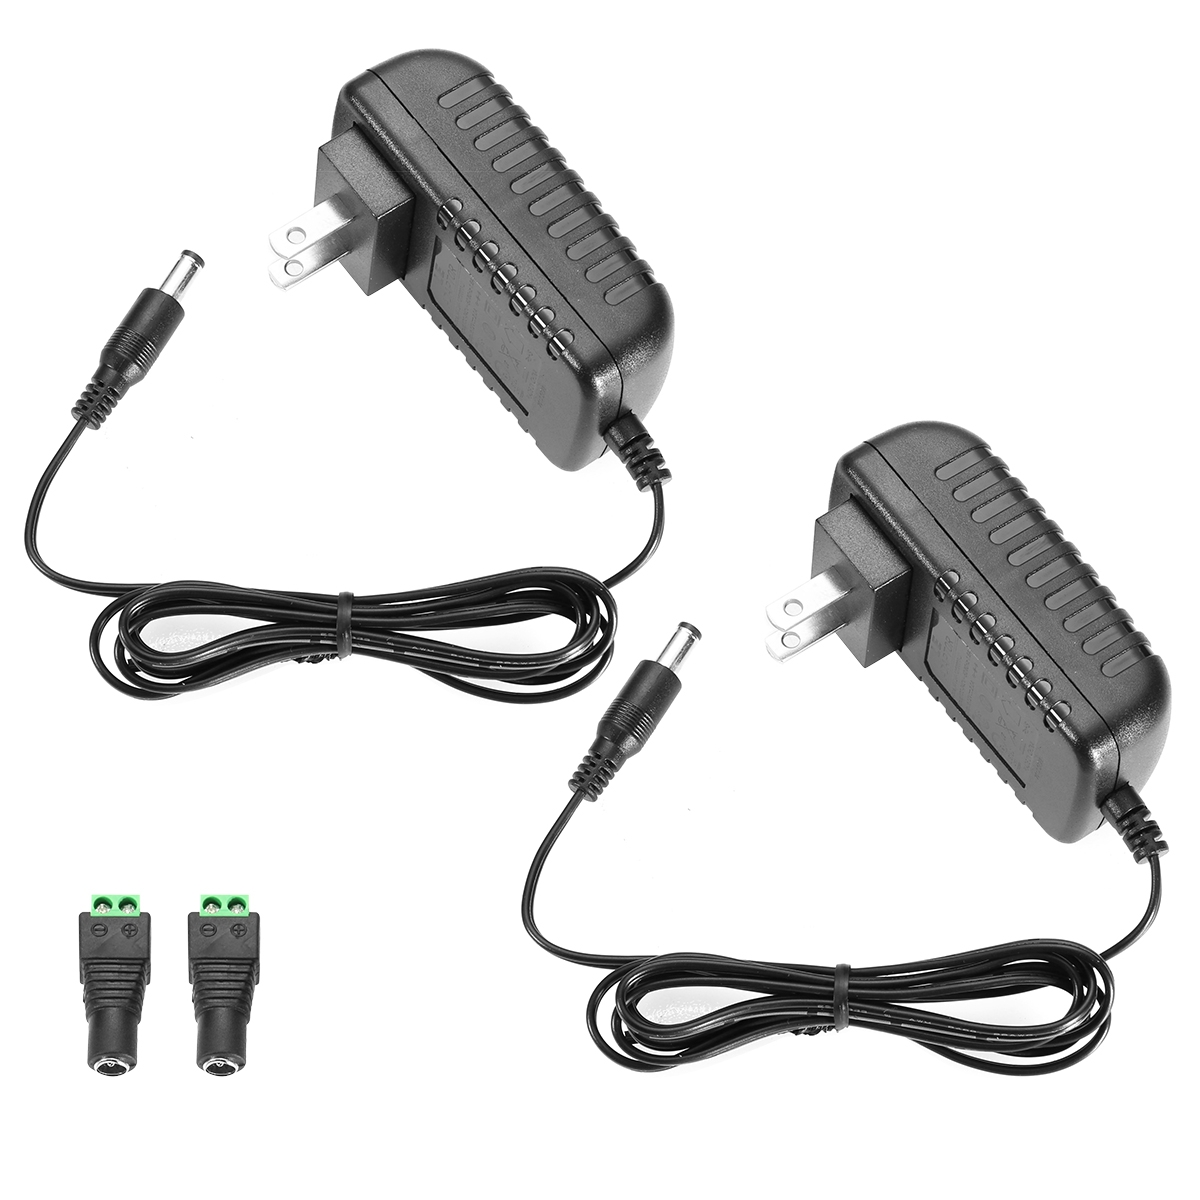 12 Volt Power Adapter Lighting Ever Top Quality Led Fixtures